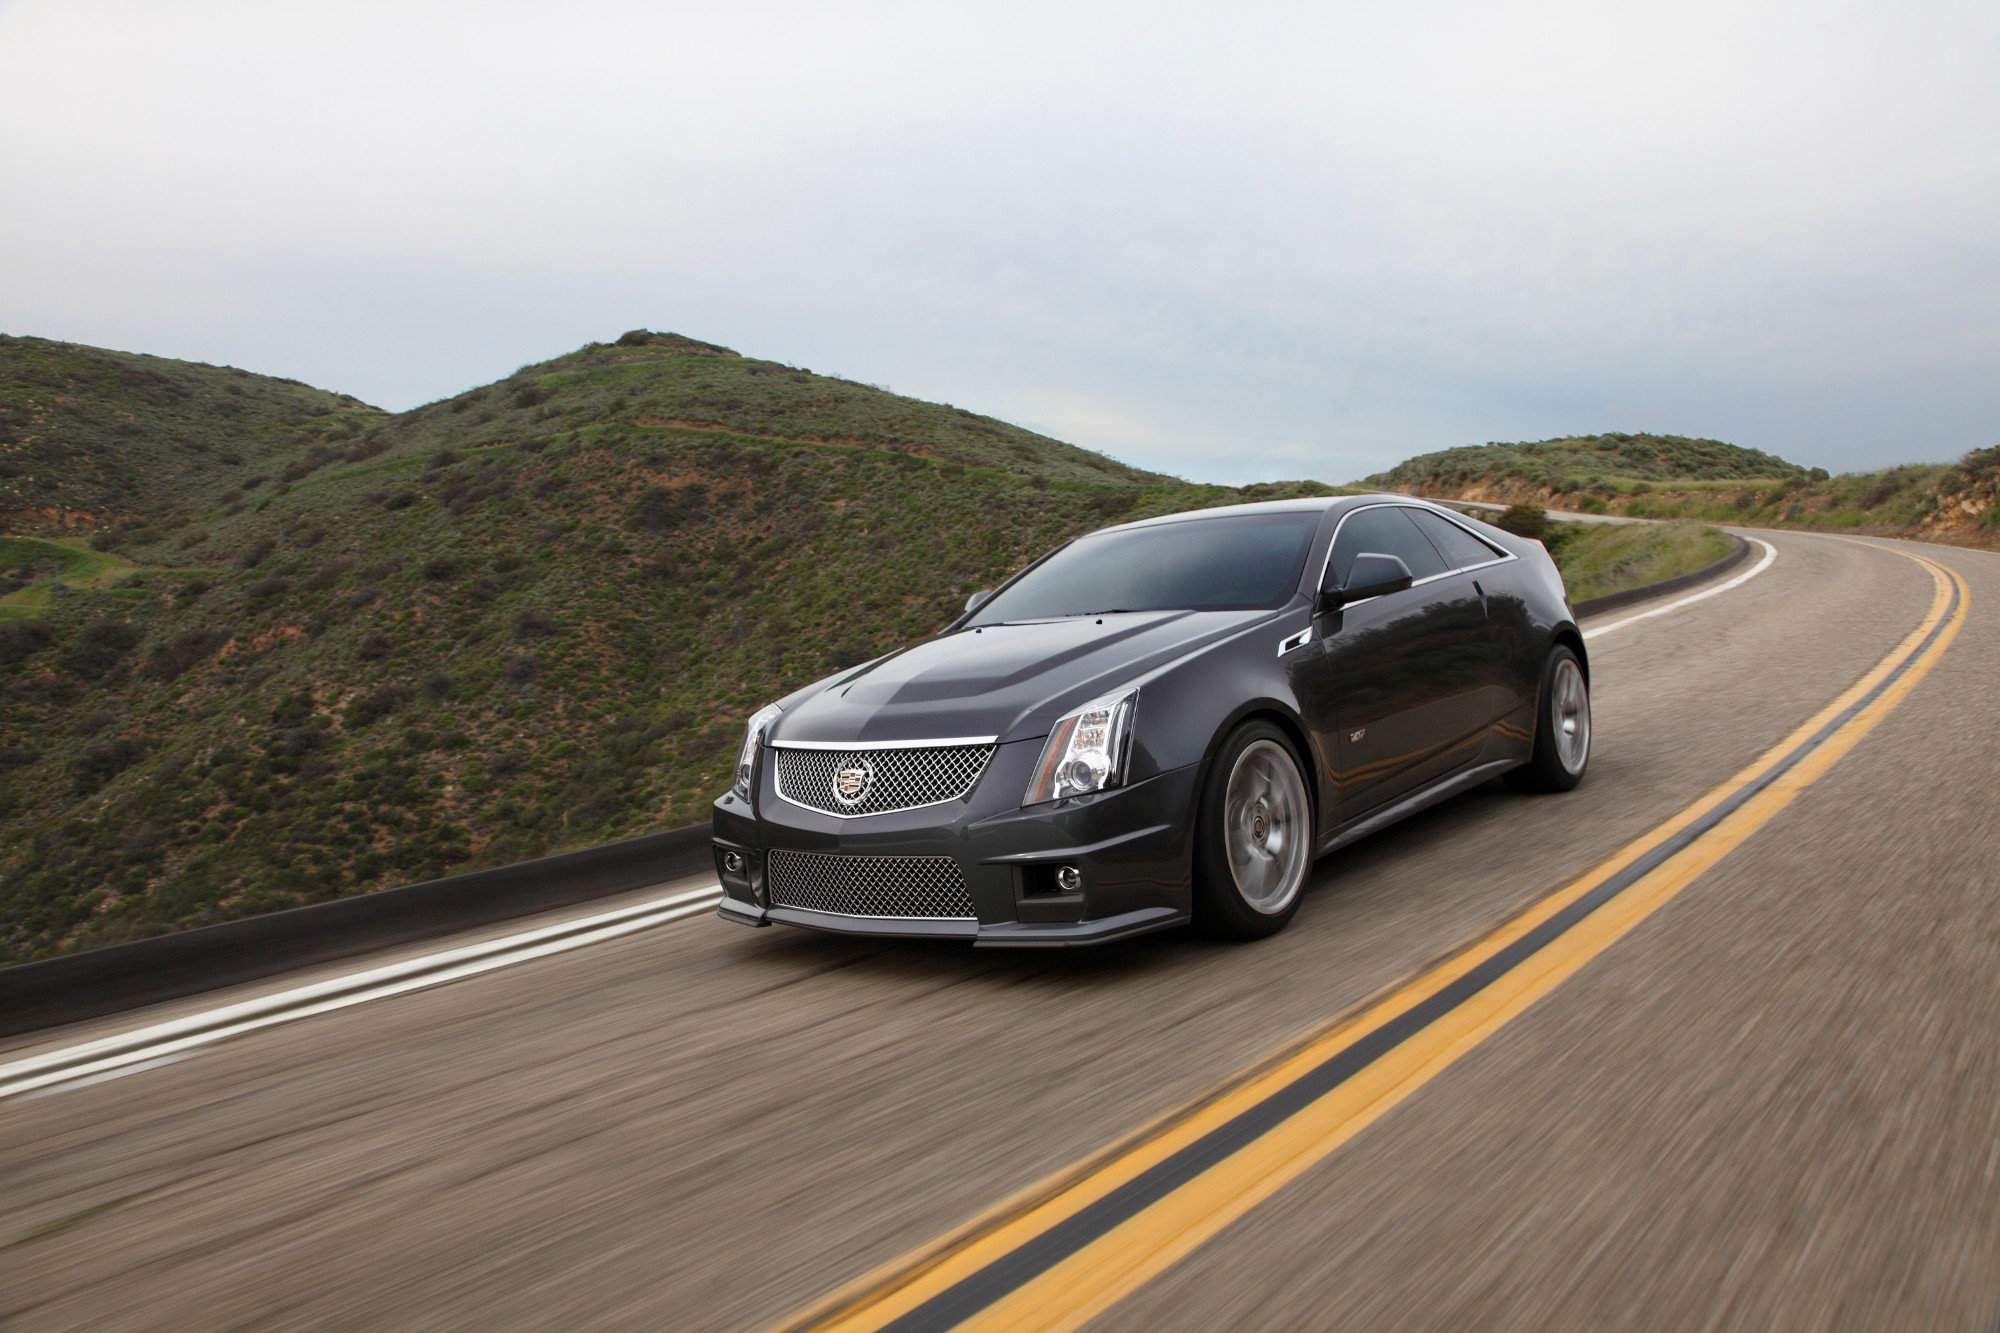 2013 cadillac cts v review ratings specs prices and. Black Bedroom Furniture Sets. Home Design Ideas